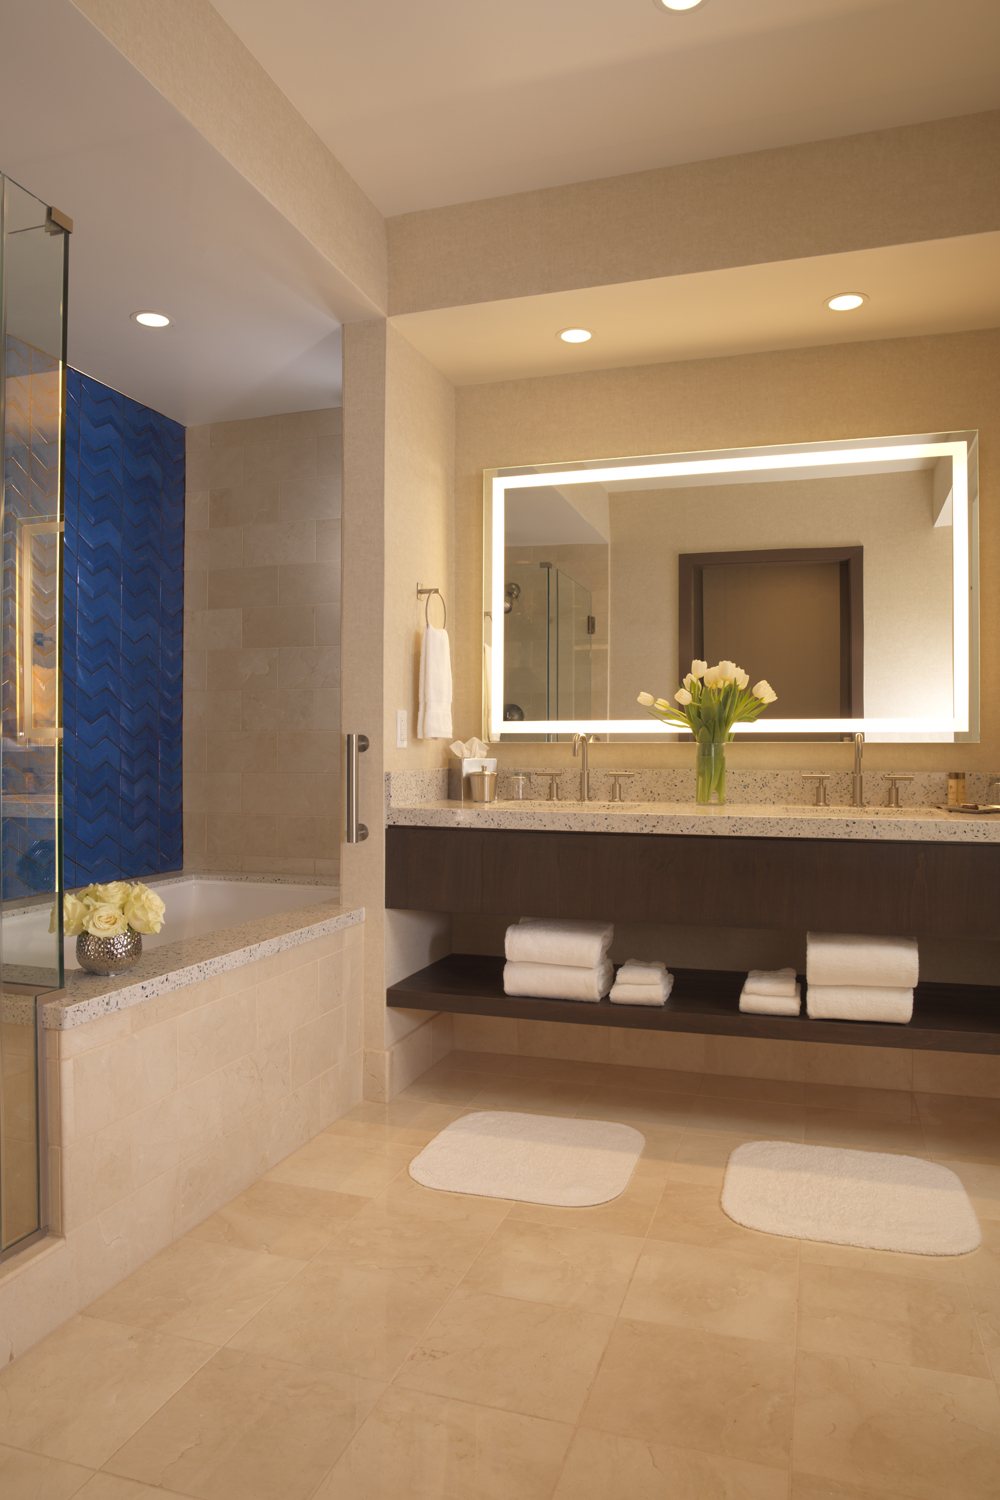 Our luxurious guest bathrooms are inviting, comfortable and stocked with all the amenities.